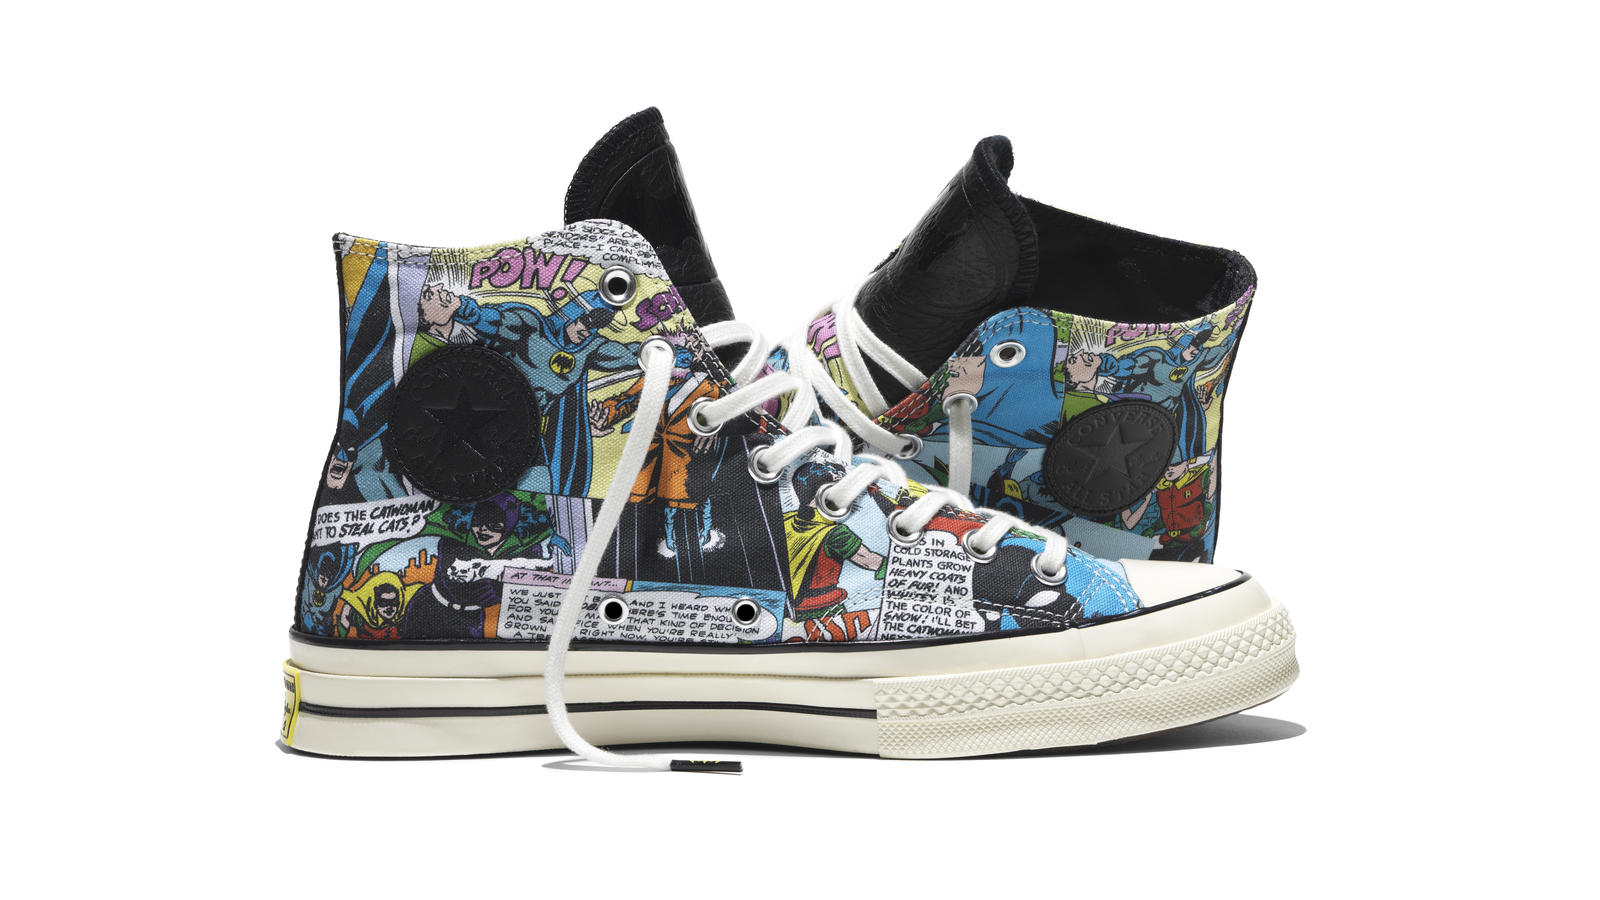 908ca2b56d9ce1 Fh16 fs ctas70 dccomics batman lateralpair 155358c hd 1600 CONVERSE ...